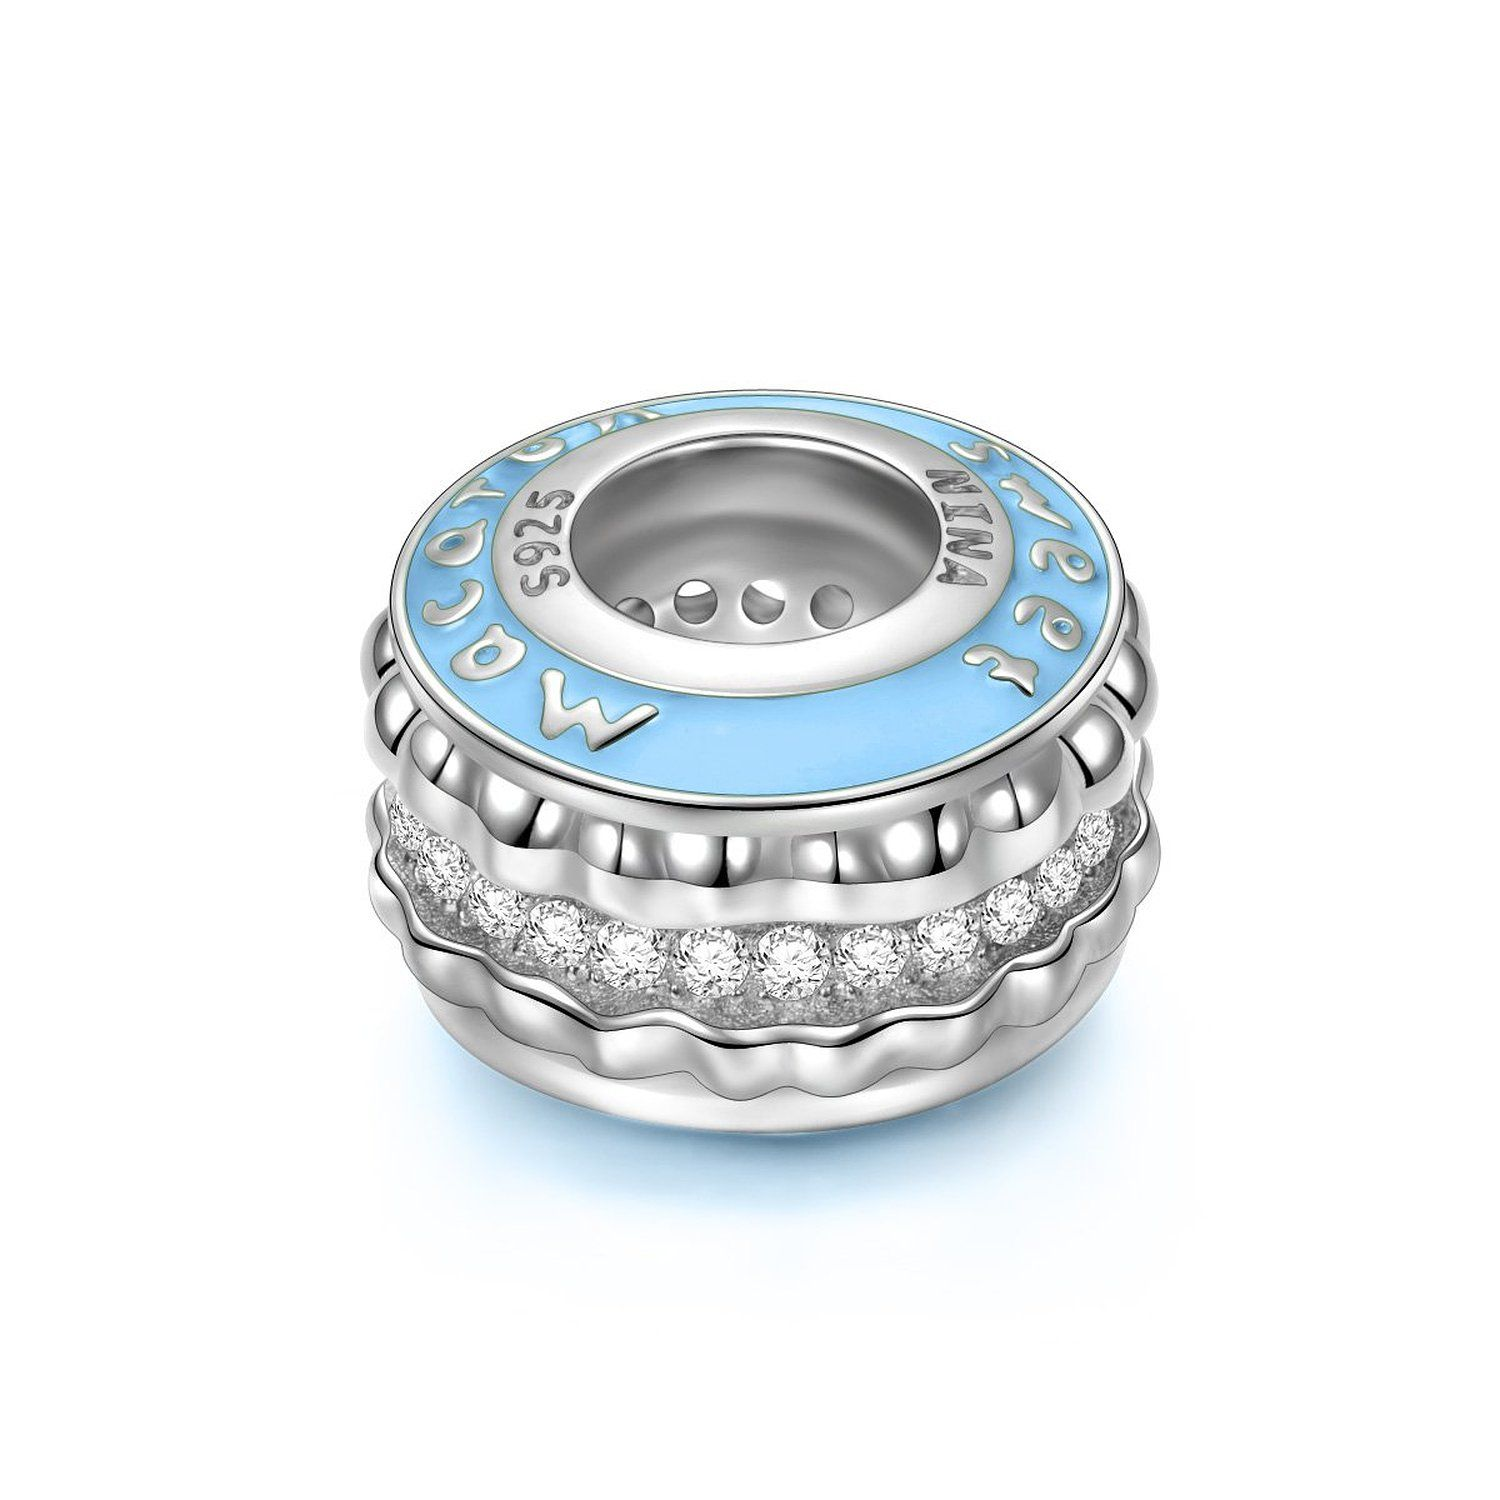 Ninaqueen french macaron sterling silver charms fits pandora